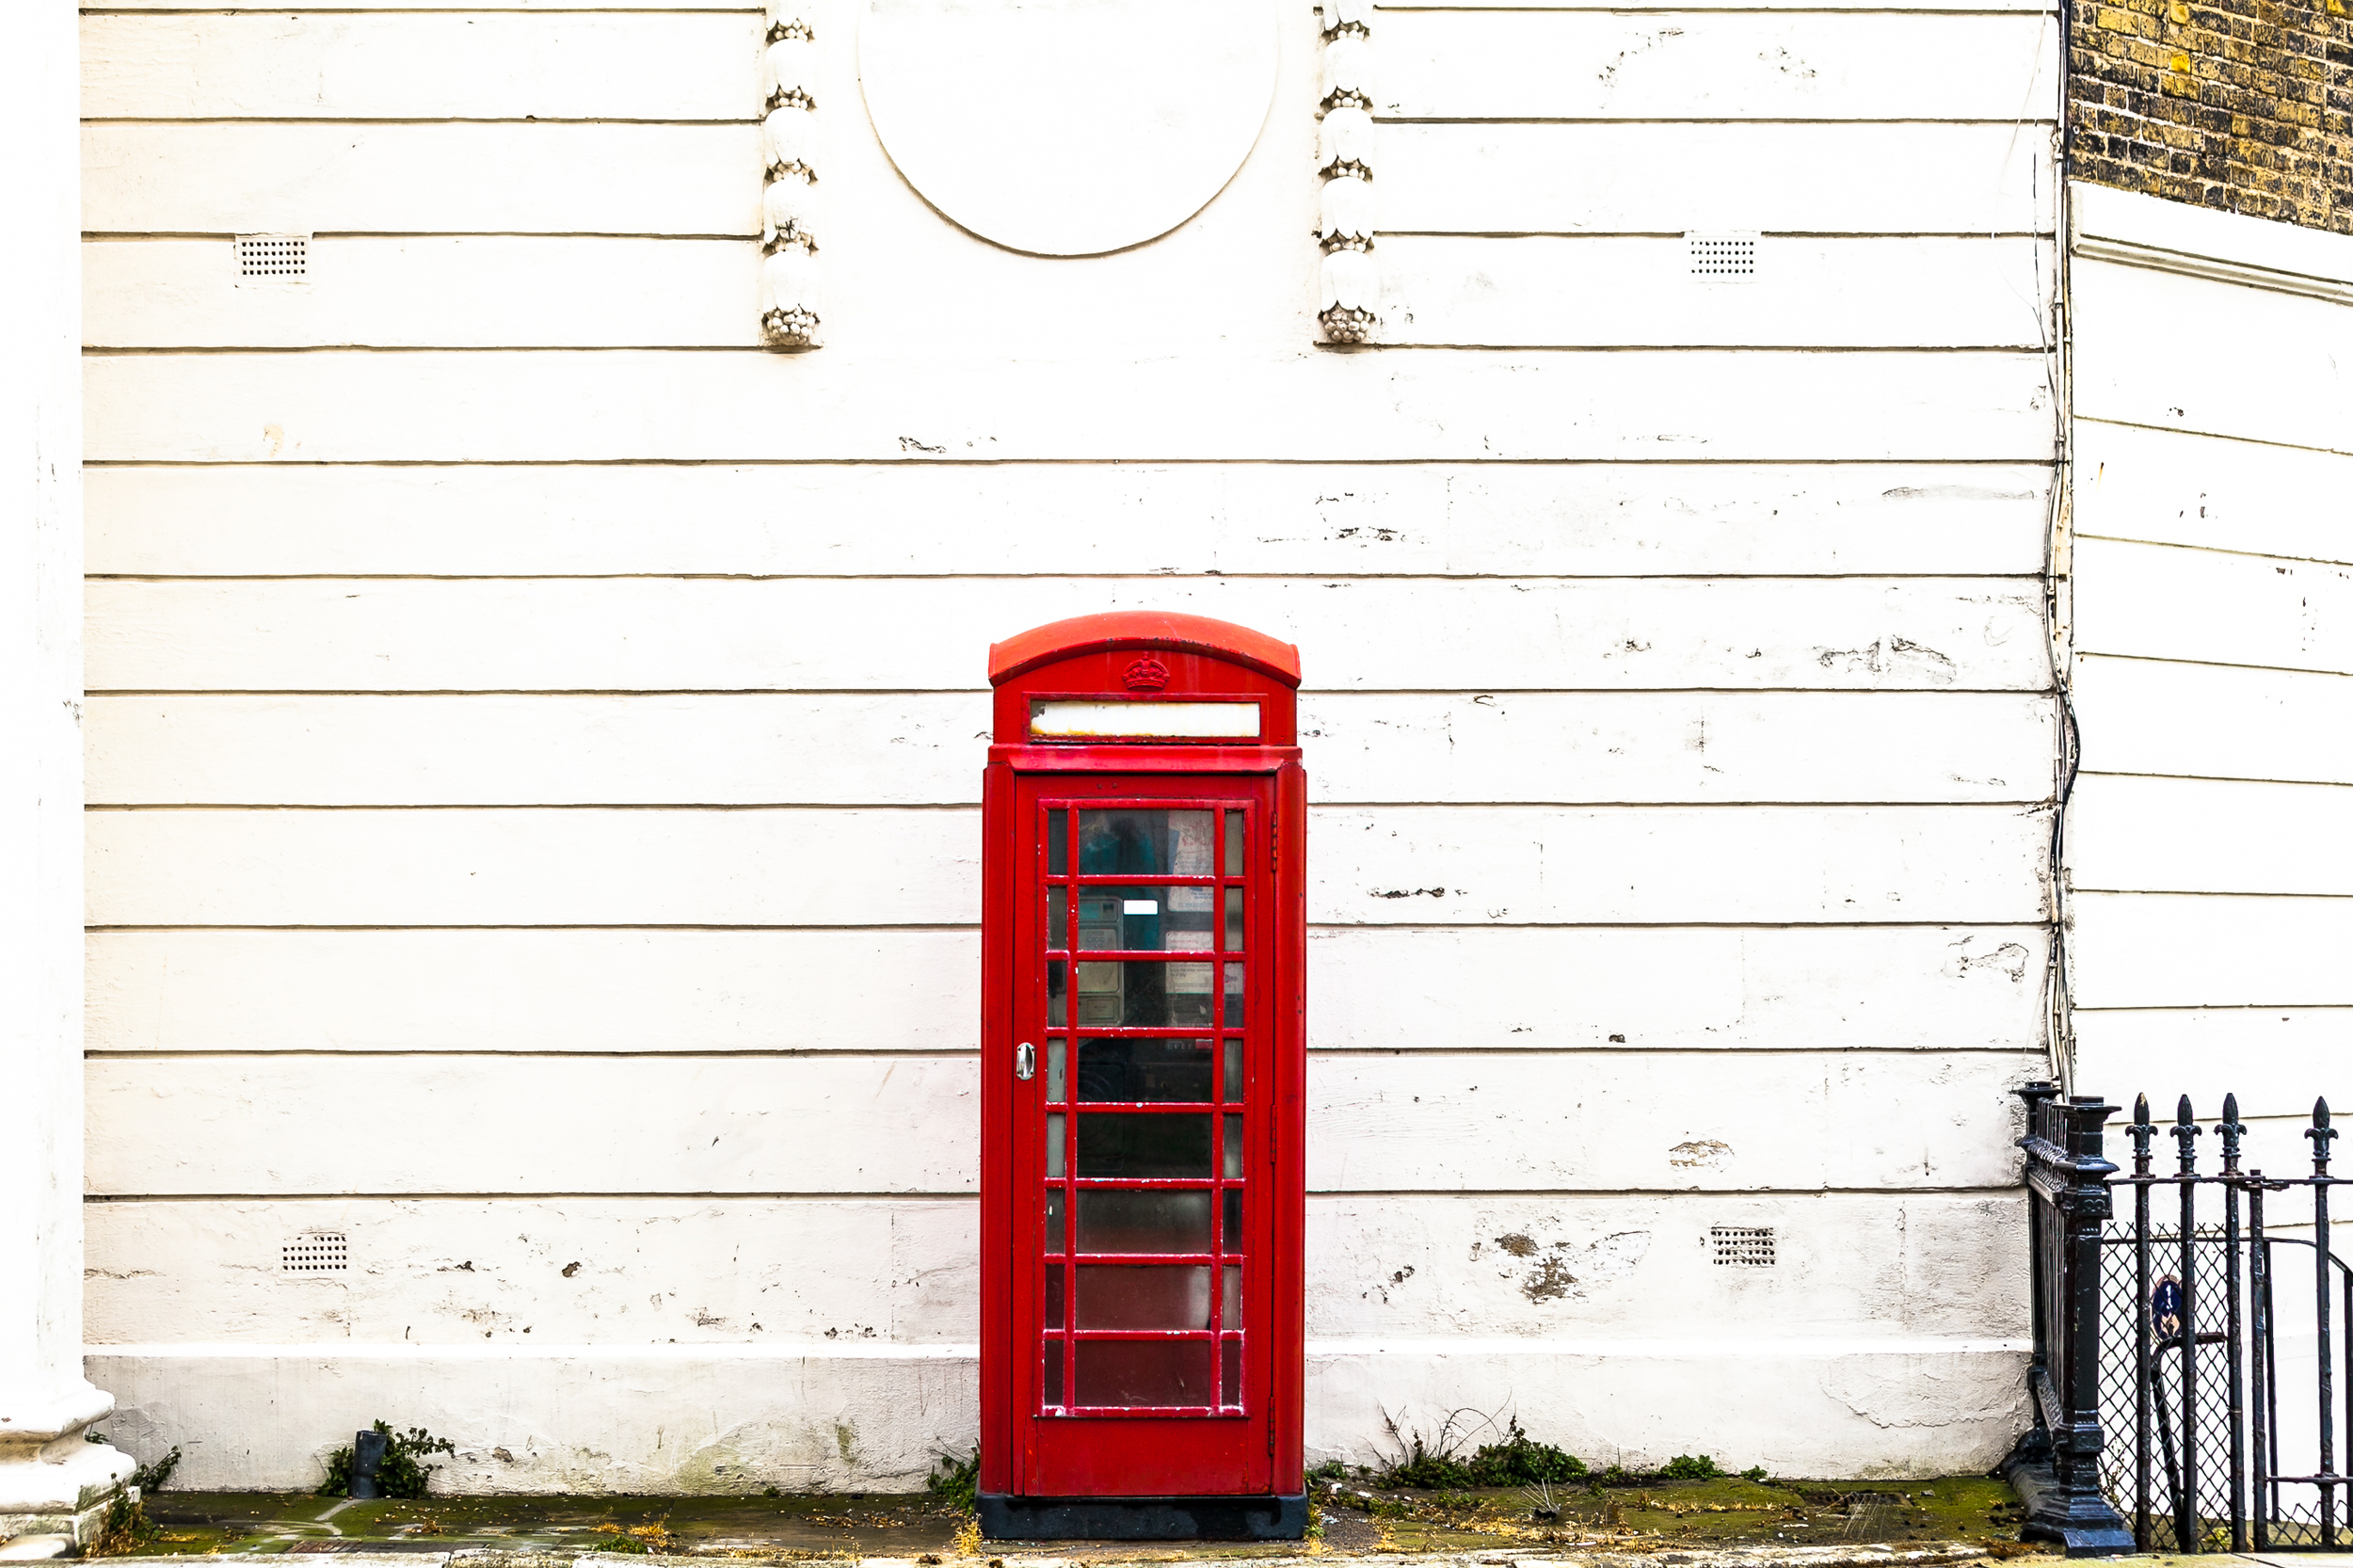 The once prevalent and iconic British K2 phone booth sits deserted on a back street of Dover UK